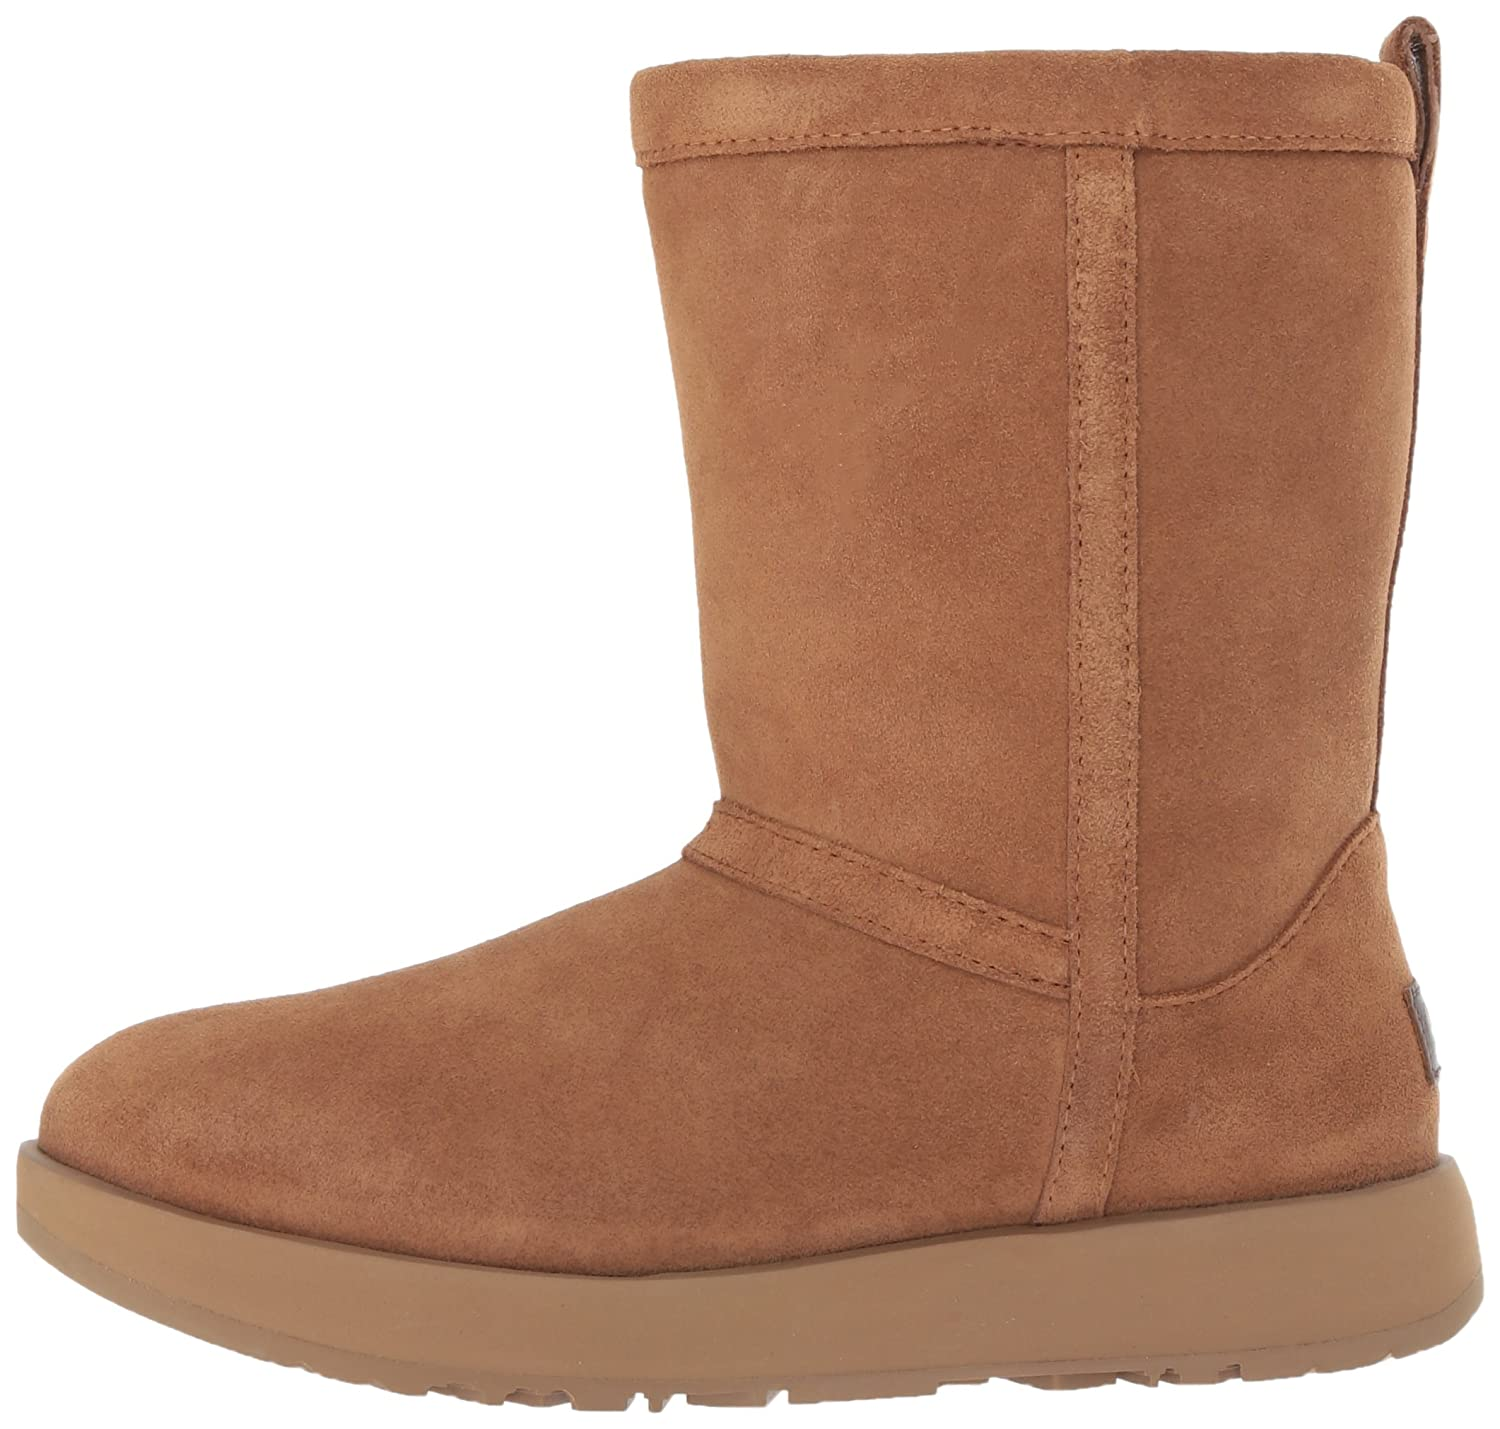 b6691fc1d69 UGG Womens Classic Short Waterproof Snow Boot: Ugg: Amazon.ca: Shoes ...